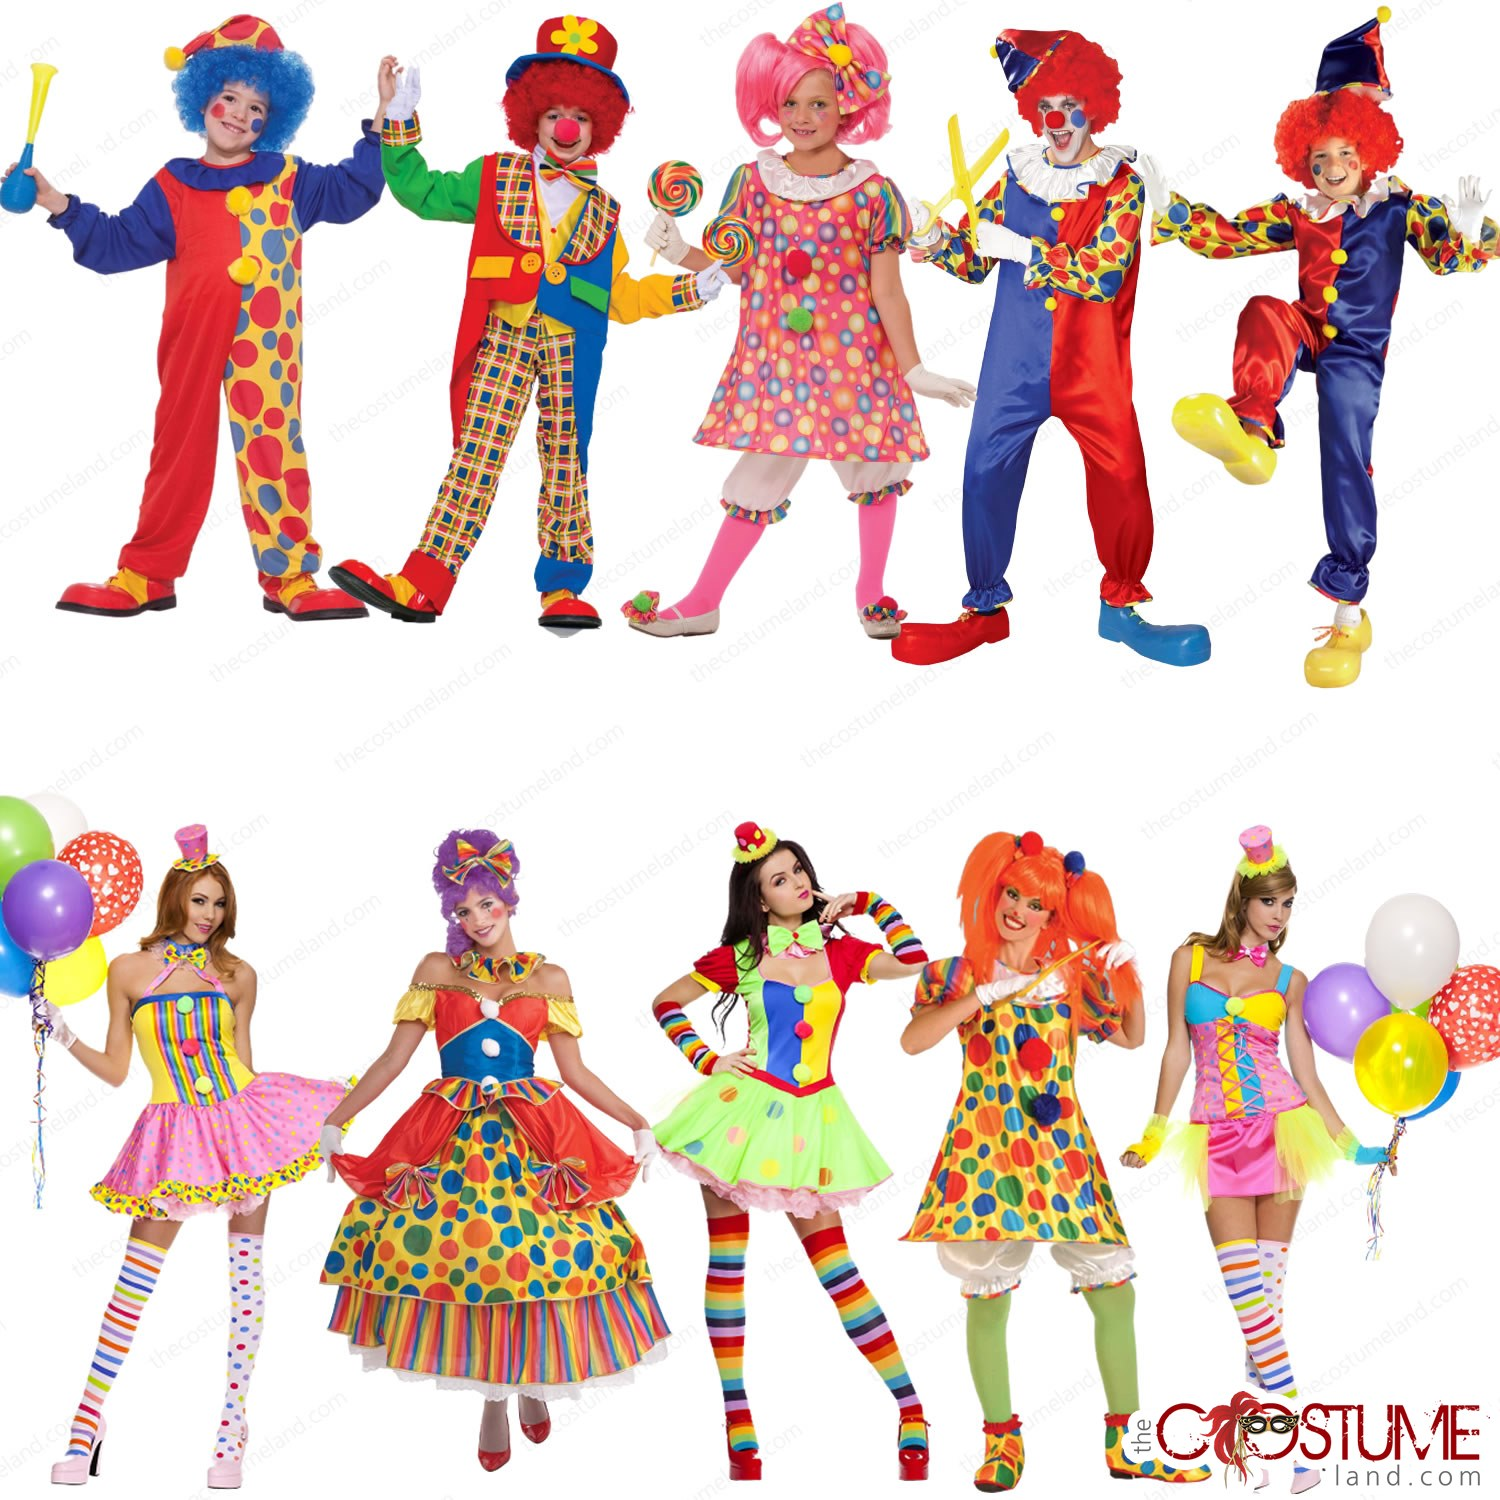 Boys Fancy Dress Costume Party Outfit SALE Kids Bubbles The Circus Clown Girls